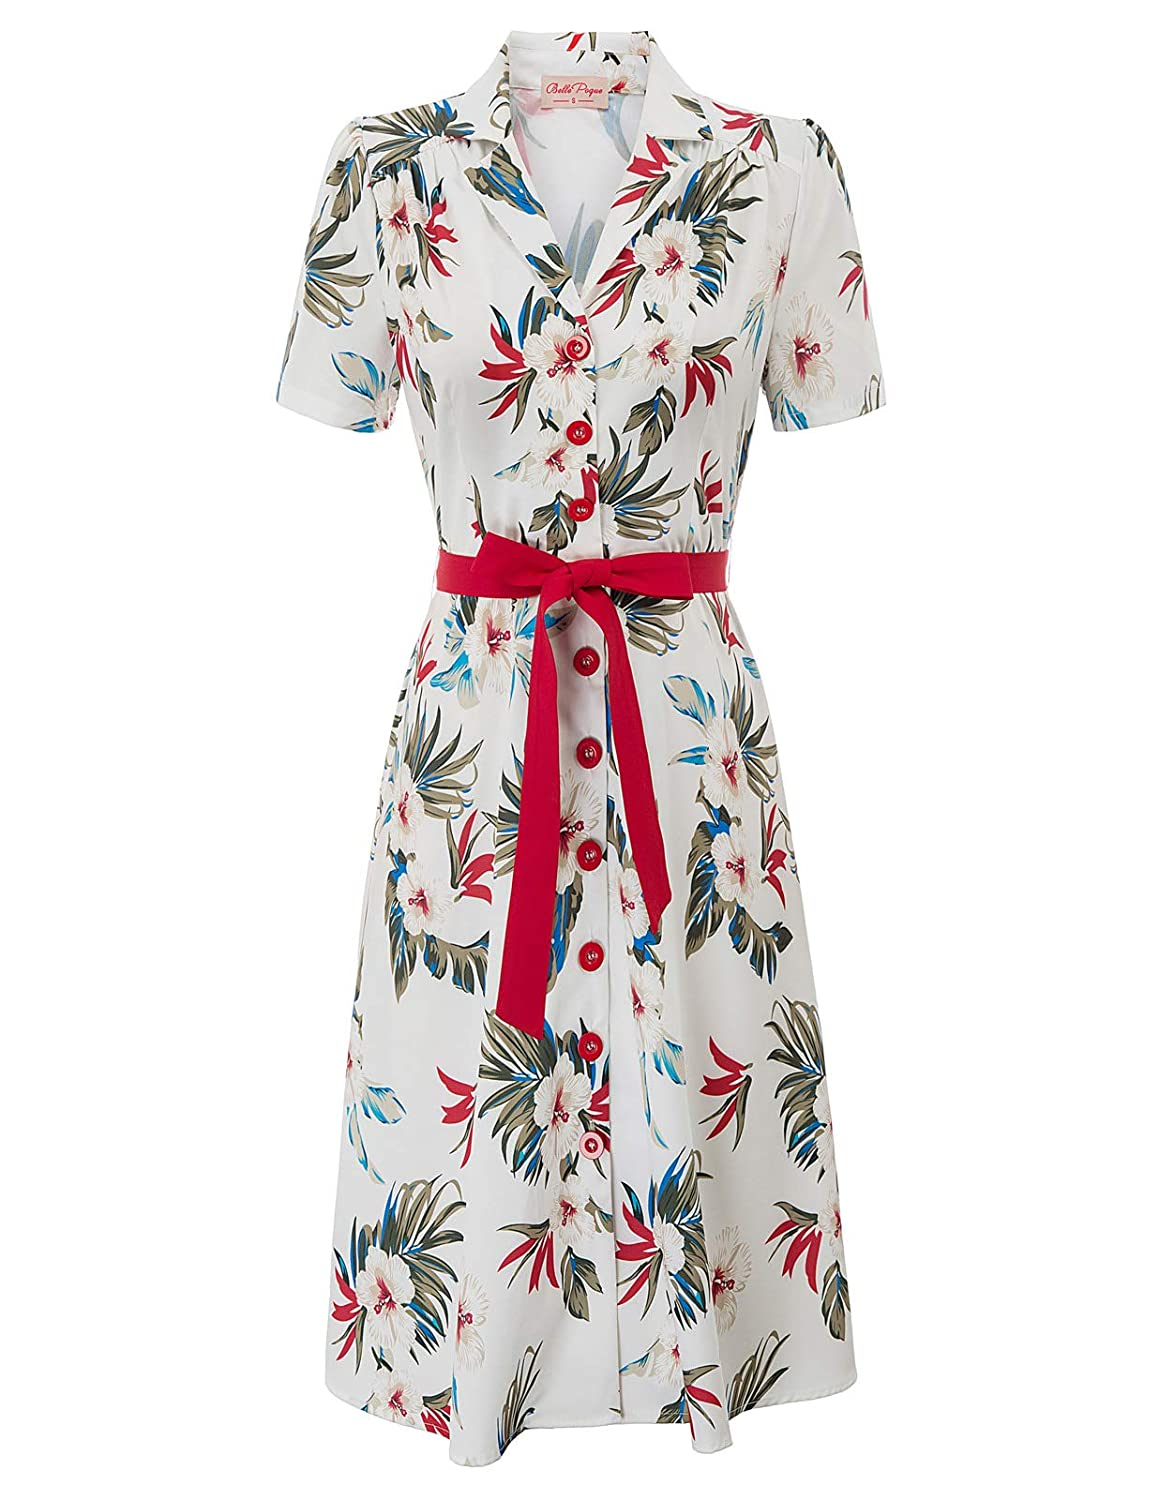 Retro Tiki Dress – Tropical, Hawaiian Dresses Belle Poque Women Vintage Floral Print Midi Dress 1950s Tea Dress with Belt BP878 $27.99 AT vintagedancer.com